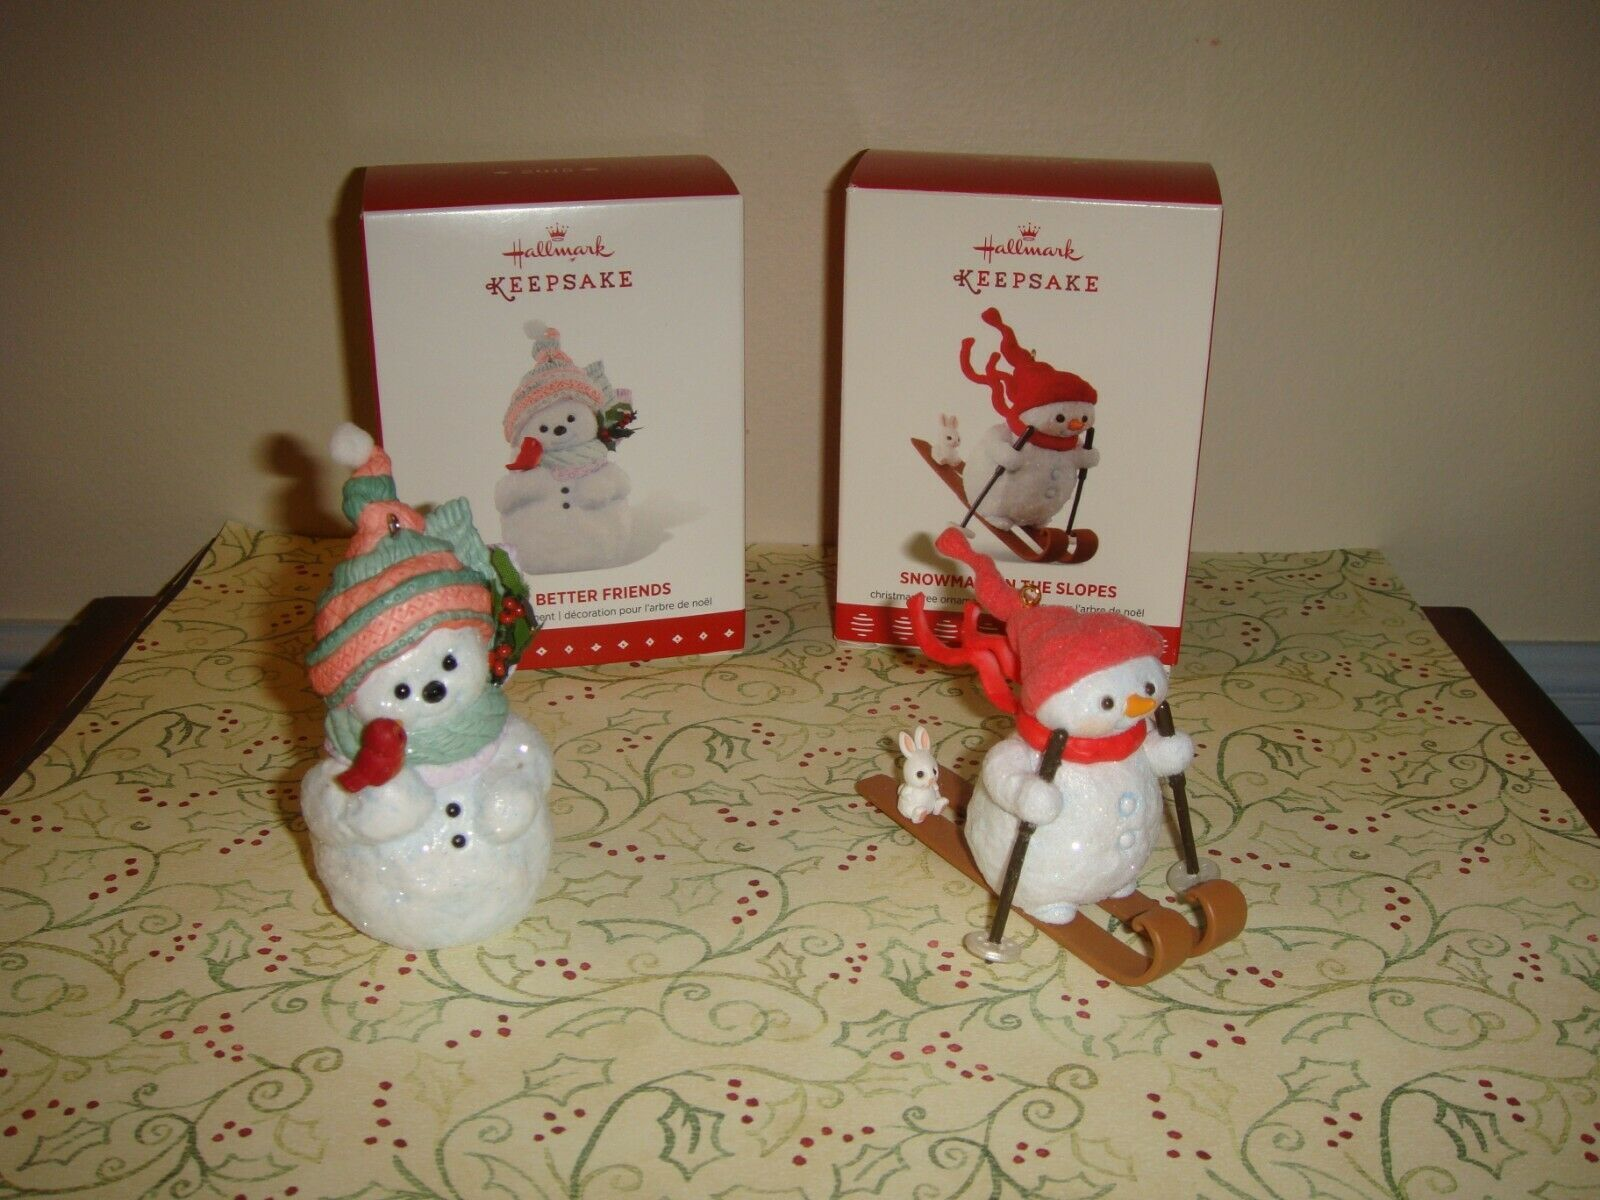 Primary image for Hallmark 2015 Snow Better Friends & 2017 Snowman On The Slopes Ornaments